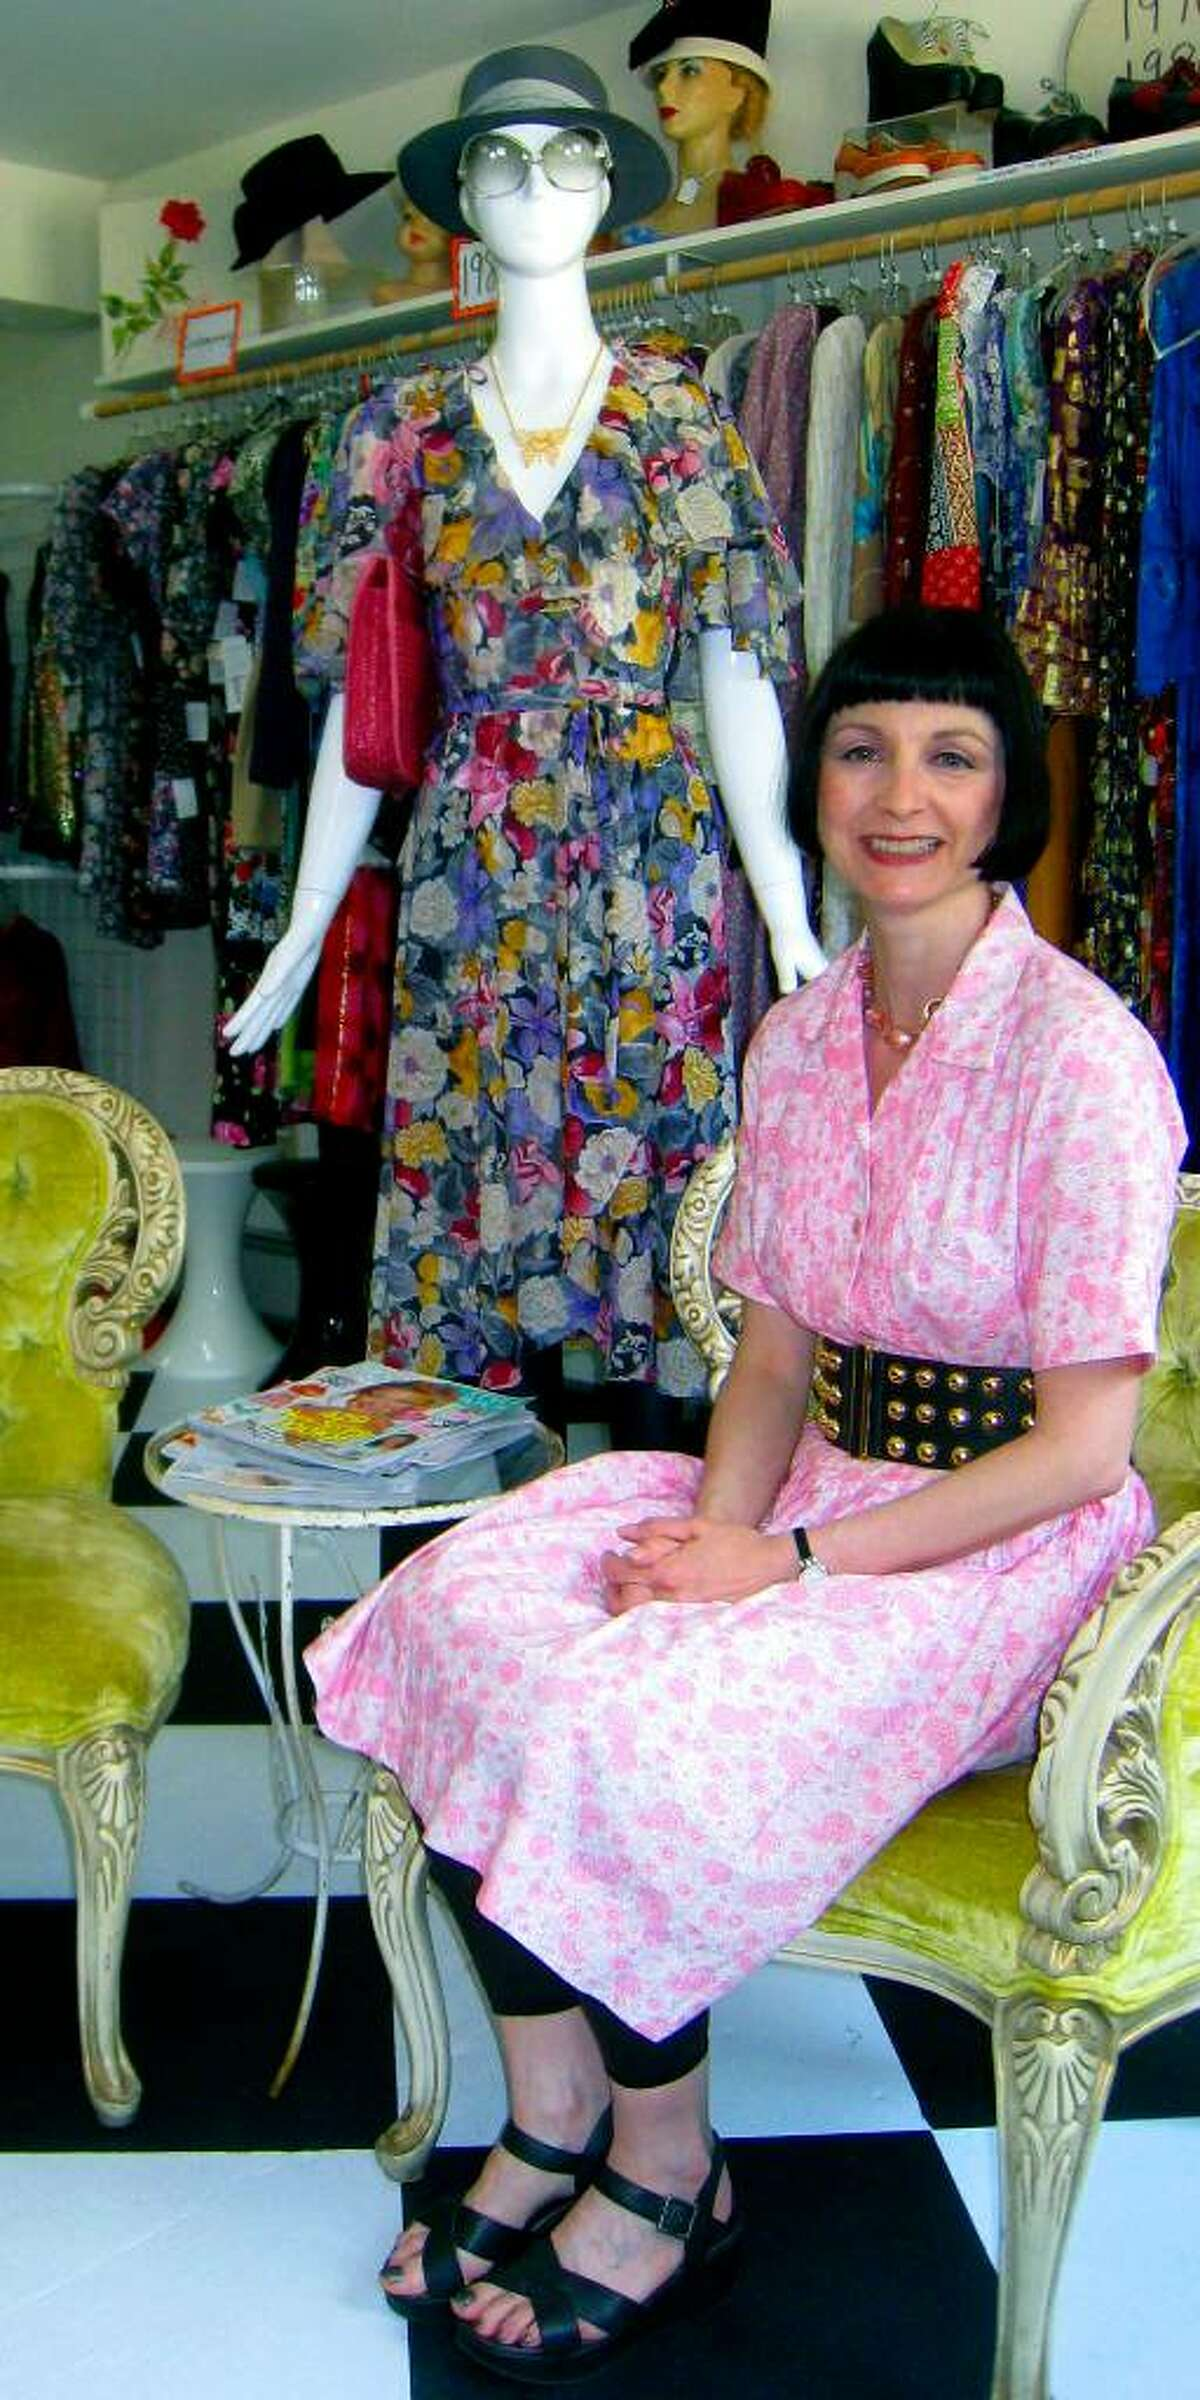 SPECTRUM/Owner Brenda Sabbatino welcome patrons at Rhiannon's Vintage Clothing along Route 7 North in New Milford, May 2010.